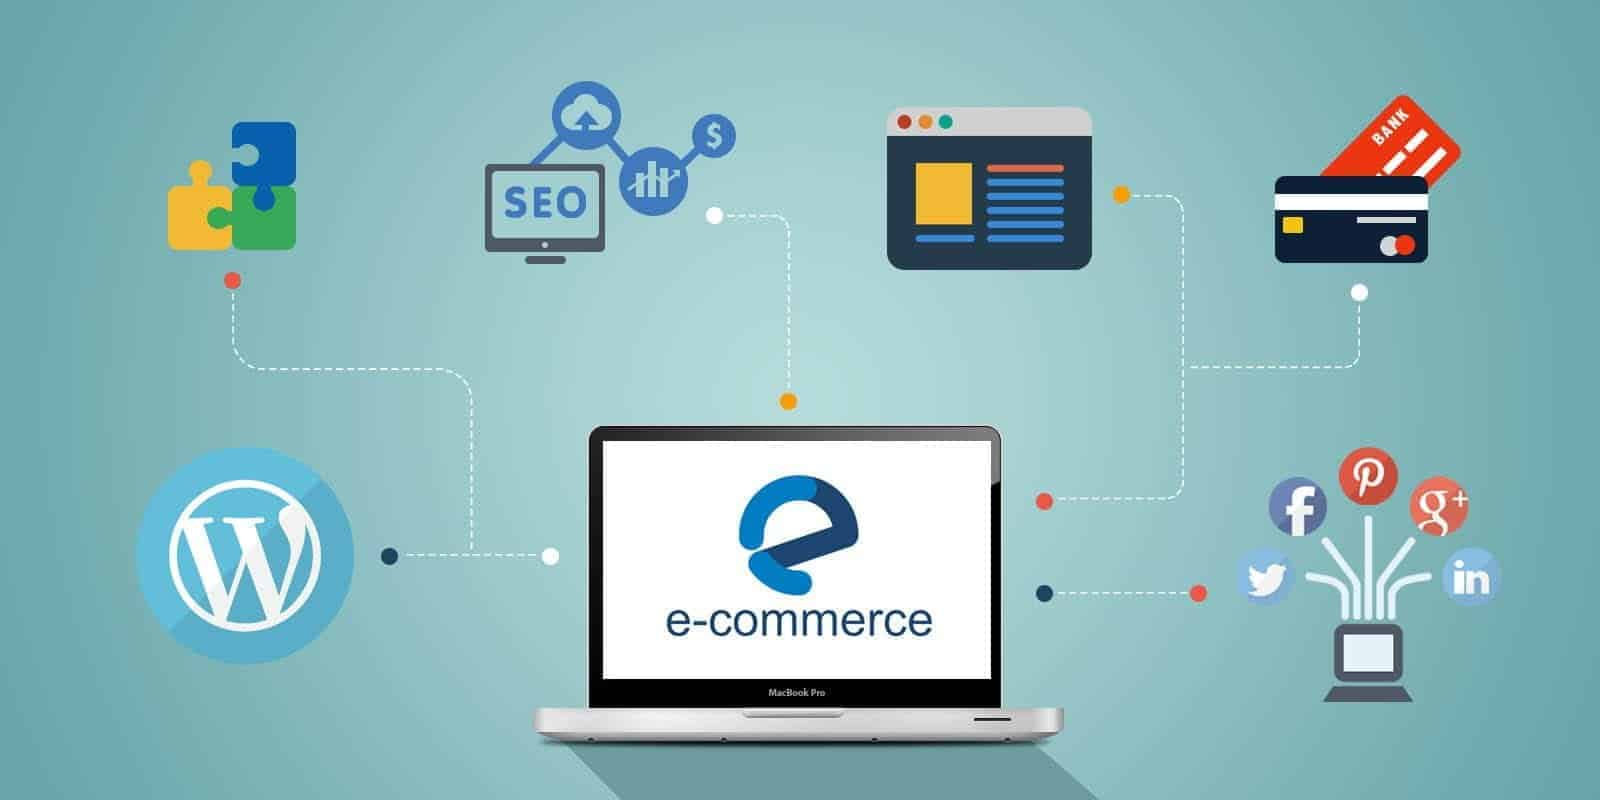 How To Make Money Online Using Google With eCommerce Site